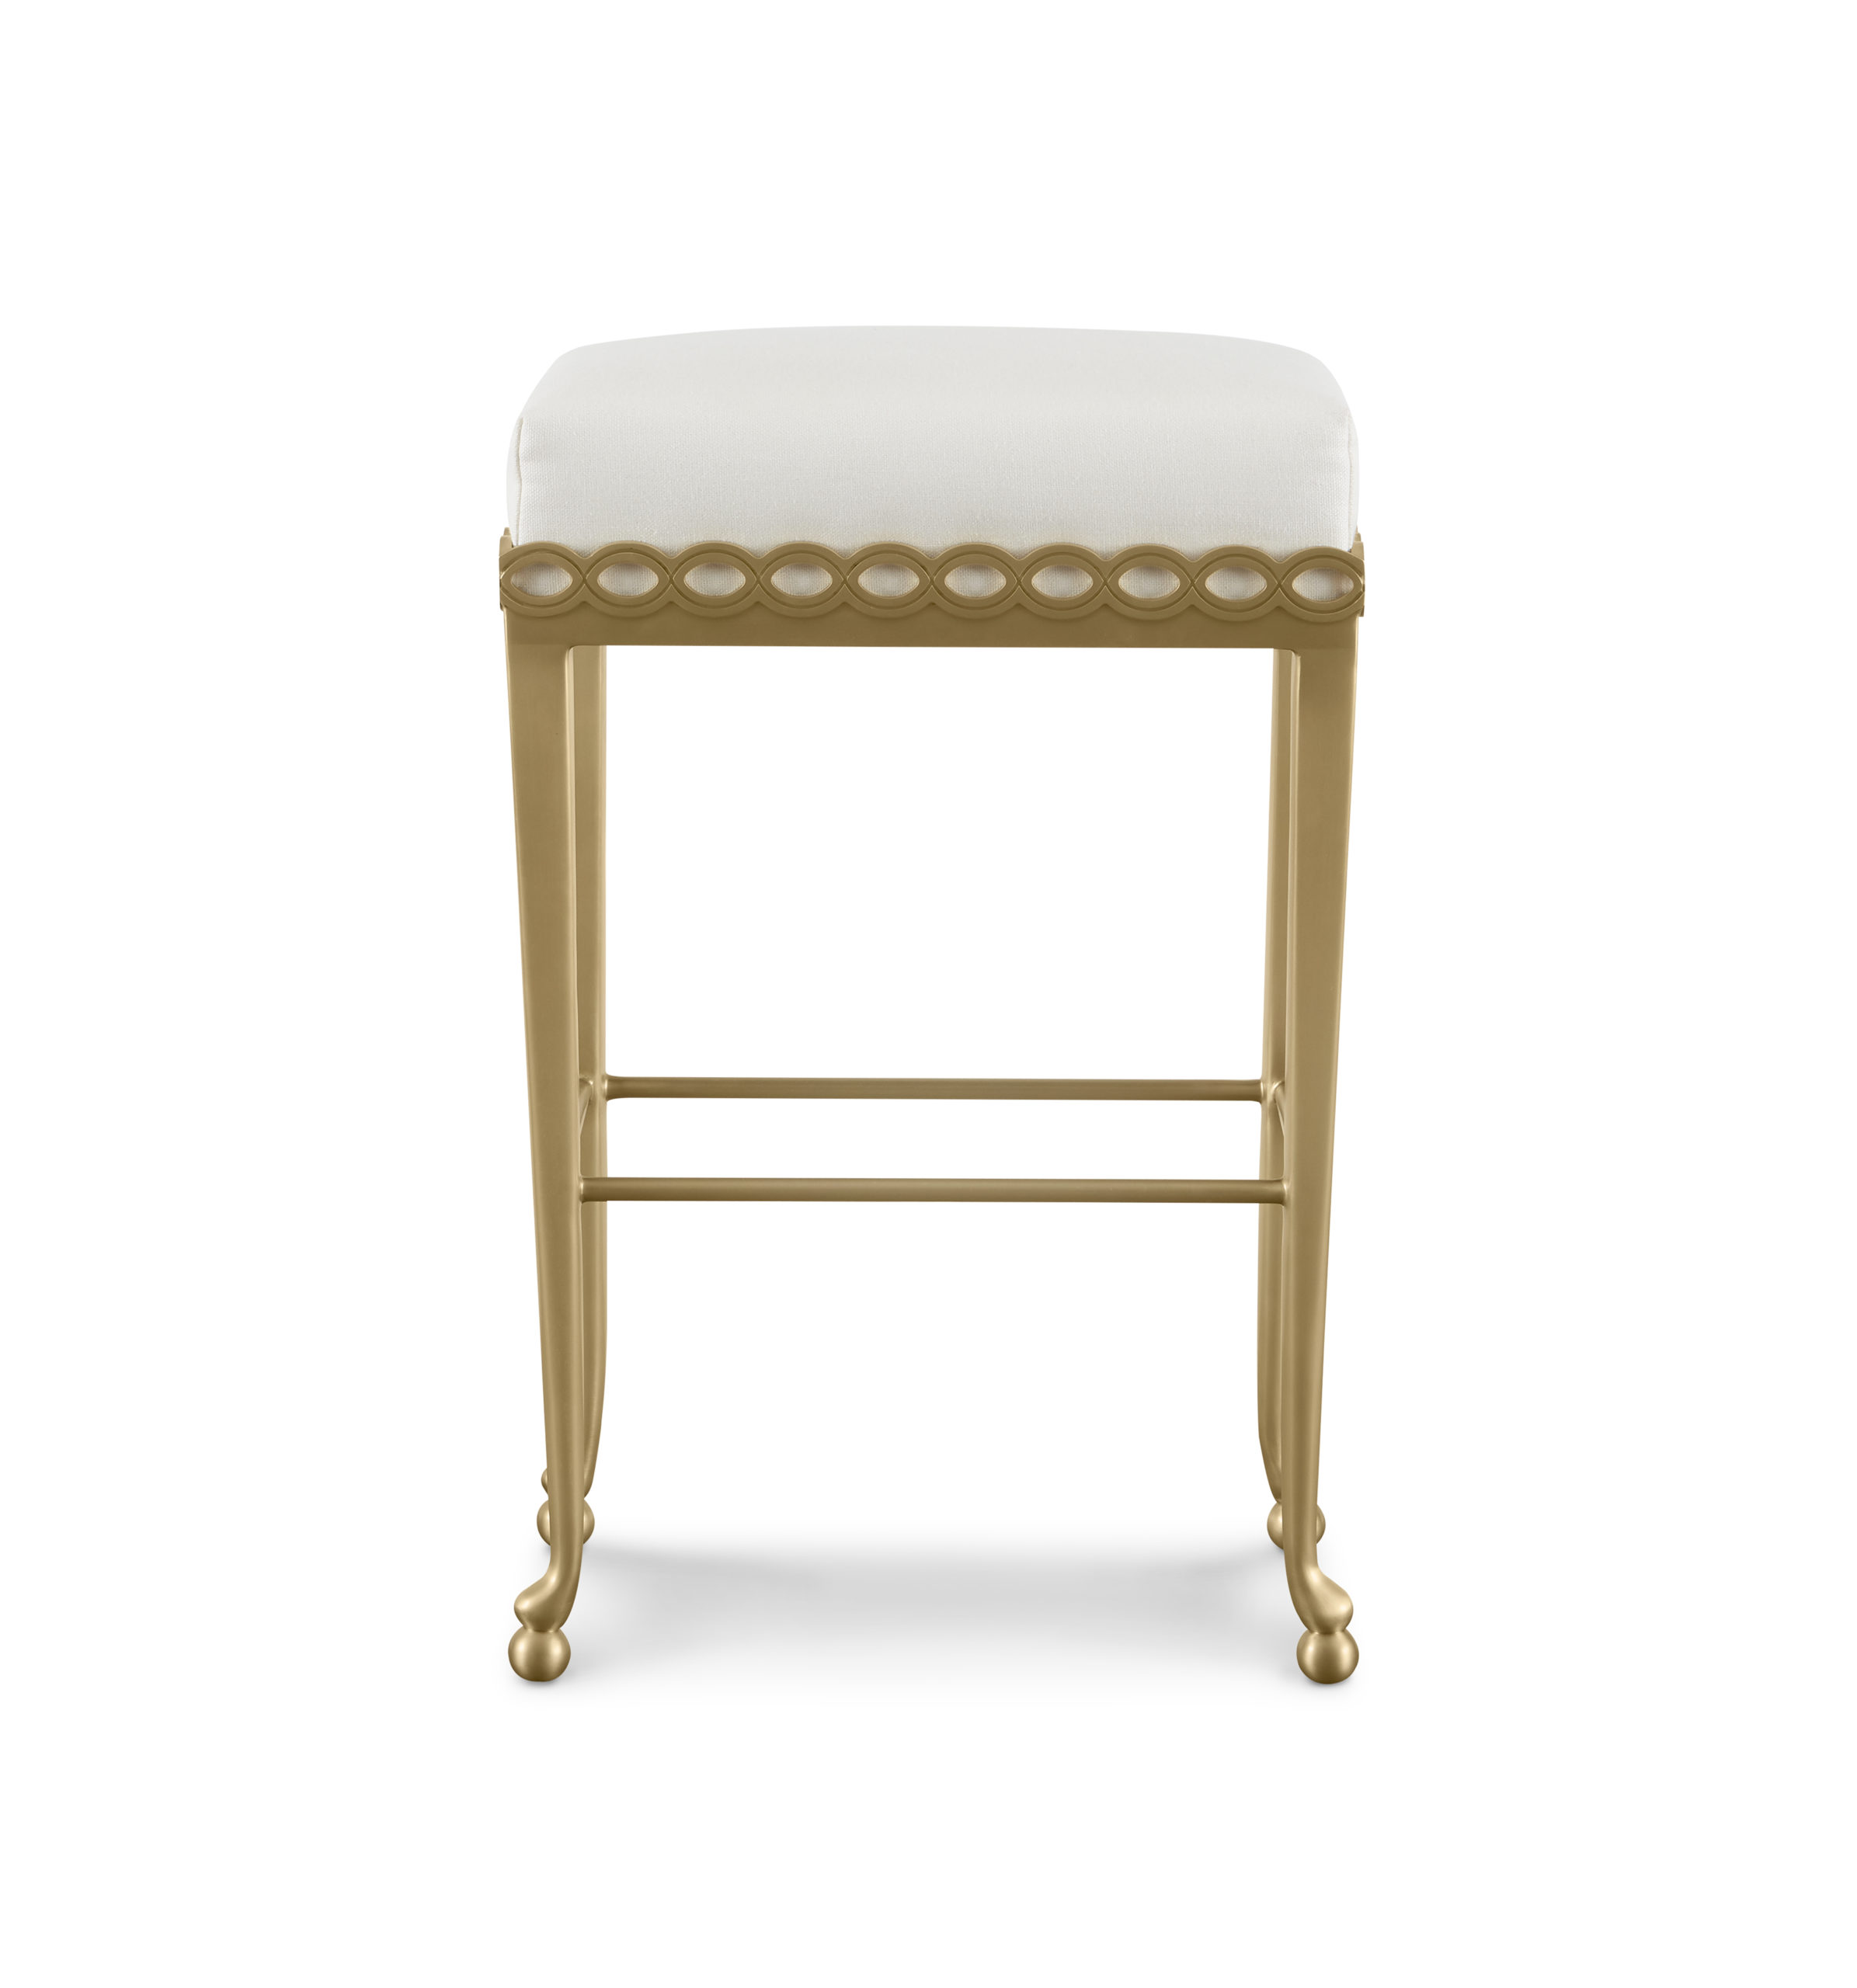 Baker_products_WNWN_infinity_barstool_BAA3249_FRONT-scaled-2